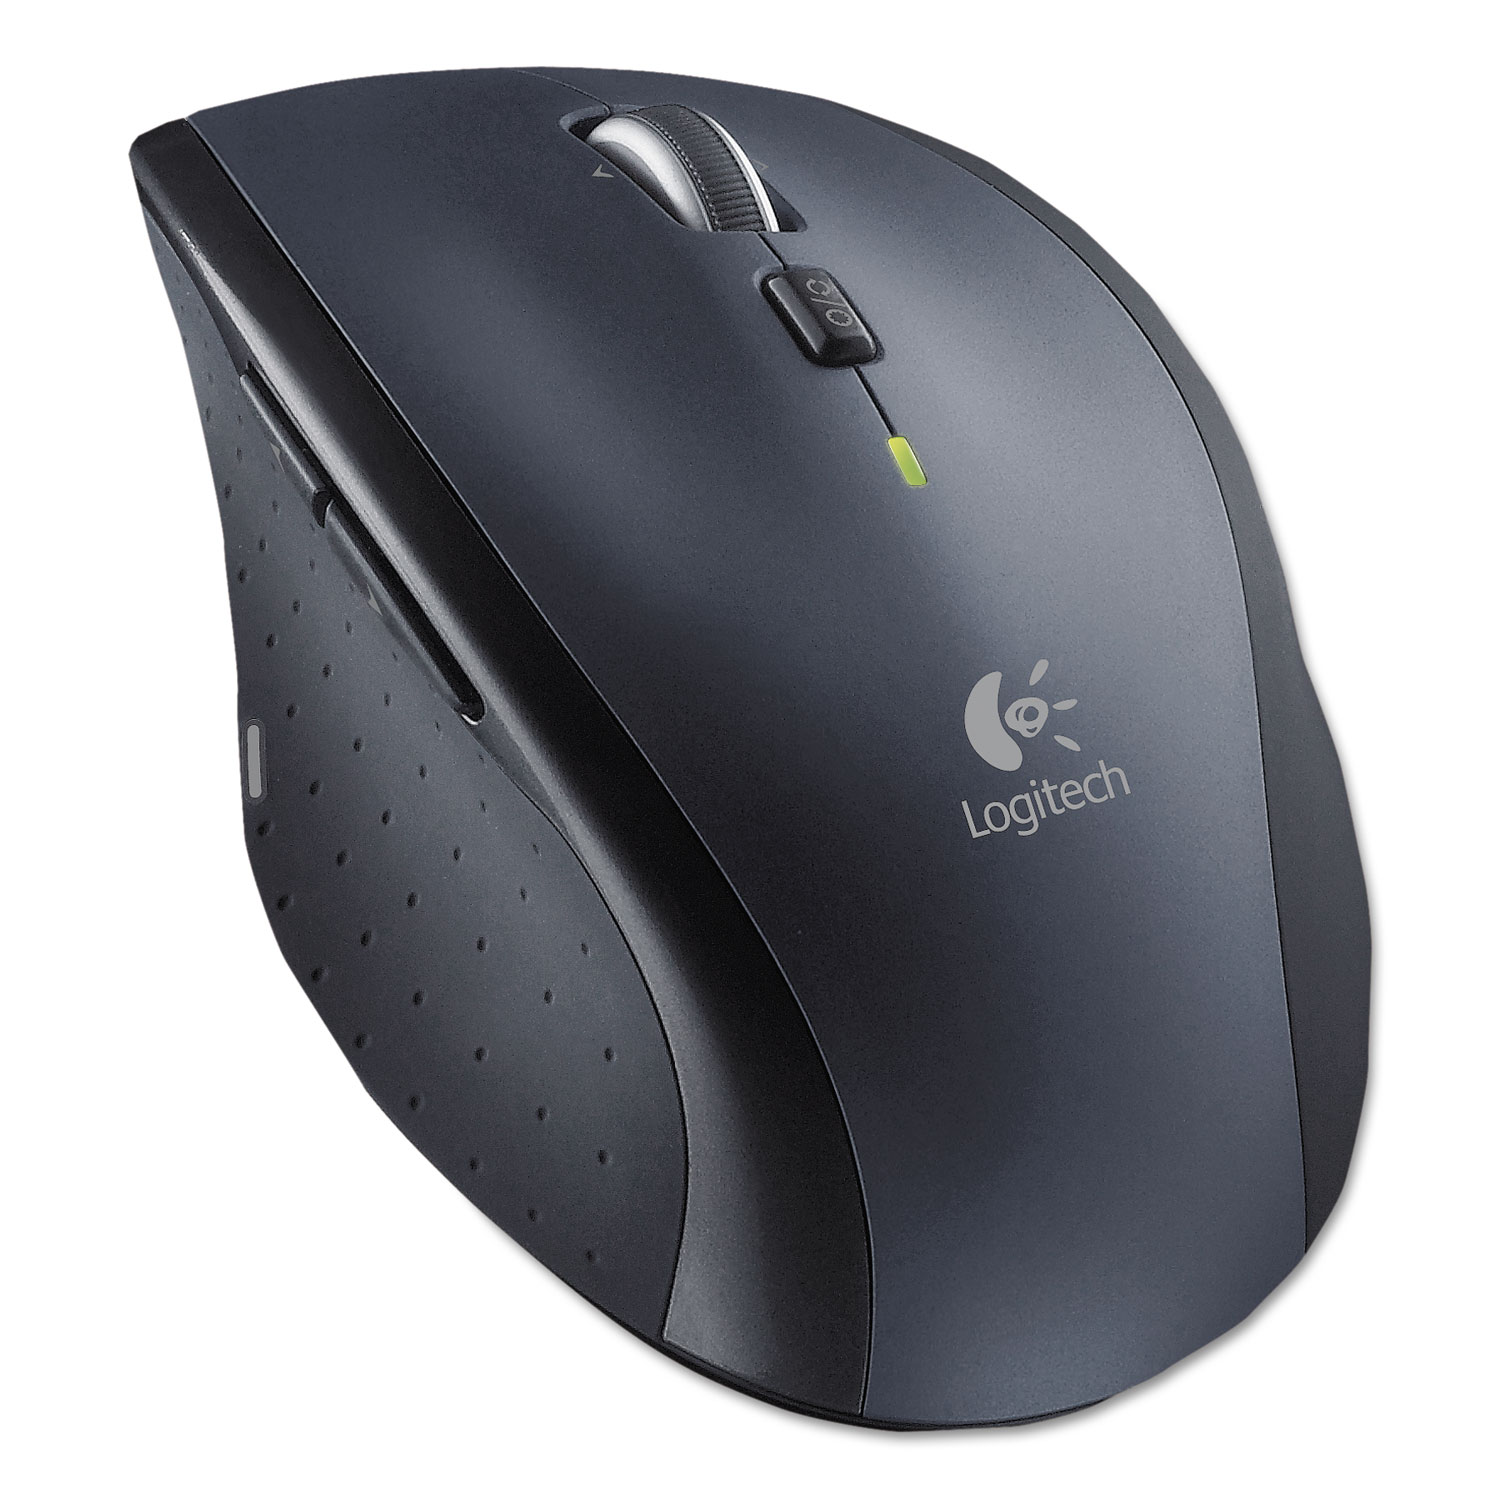 M705 Marathon Wireless Laser Mouse, 2.4 GHz Frequency/30 ft Wireless Range, Right Hand Use, Black